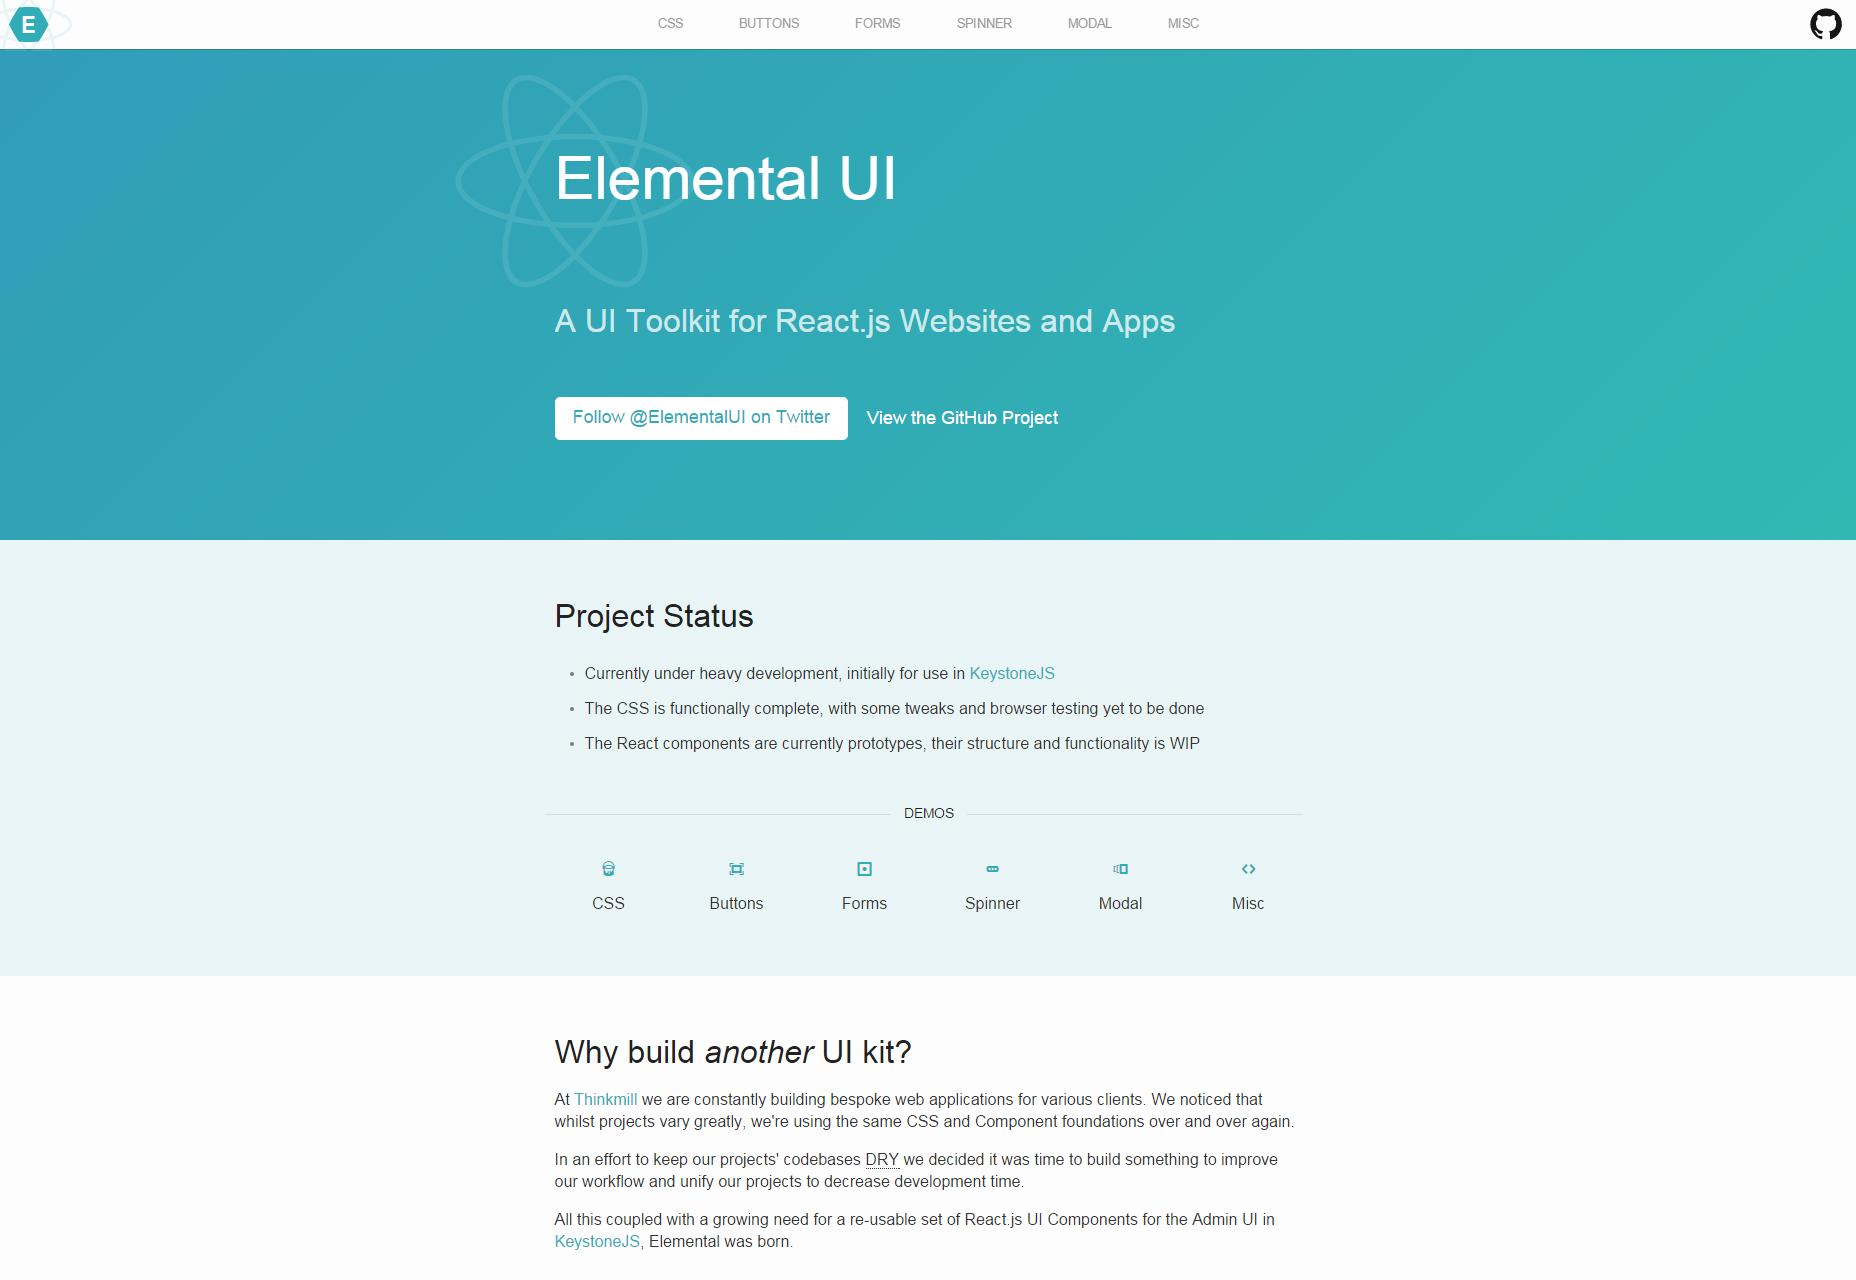 elemental-reactjs-focused-ui-toolkit